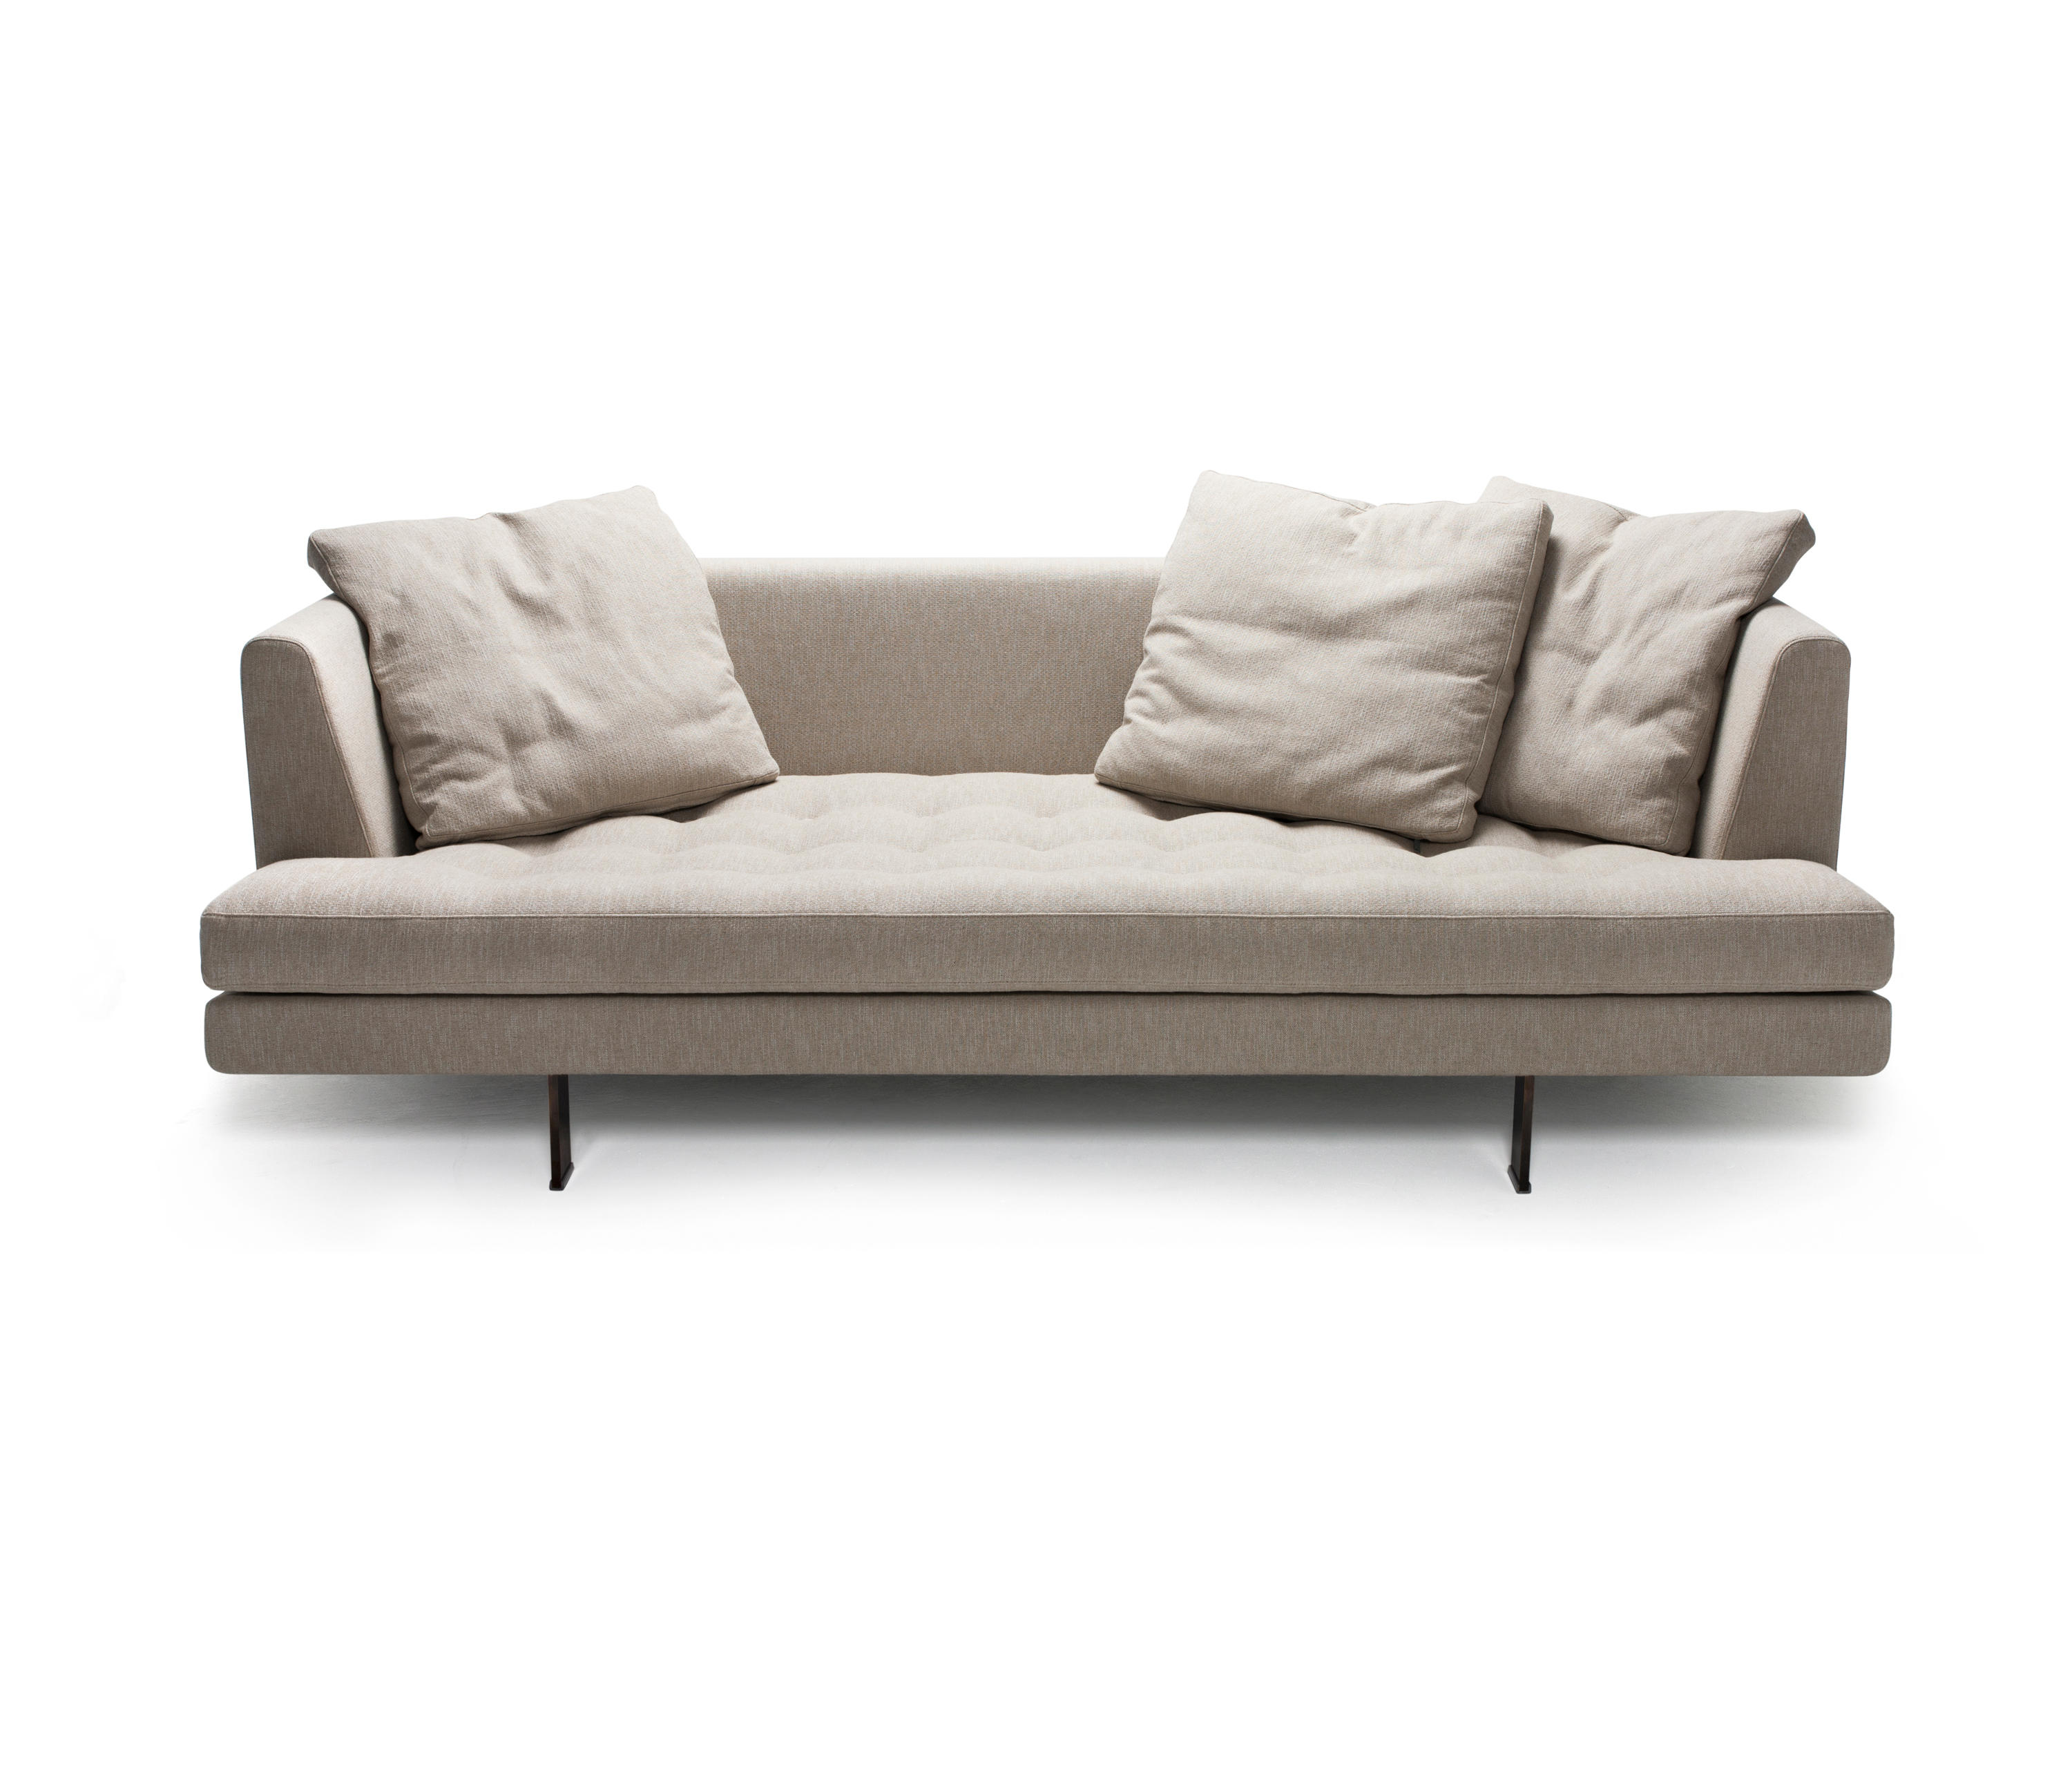 EDWARD Sofas from Bensen